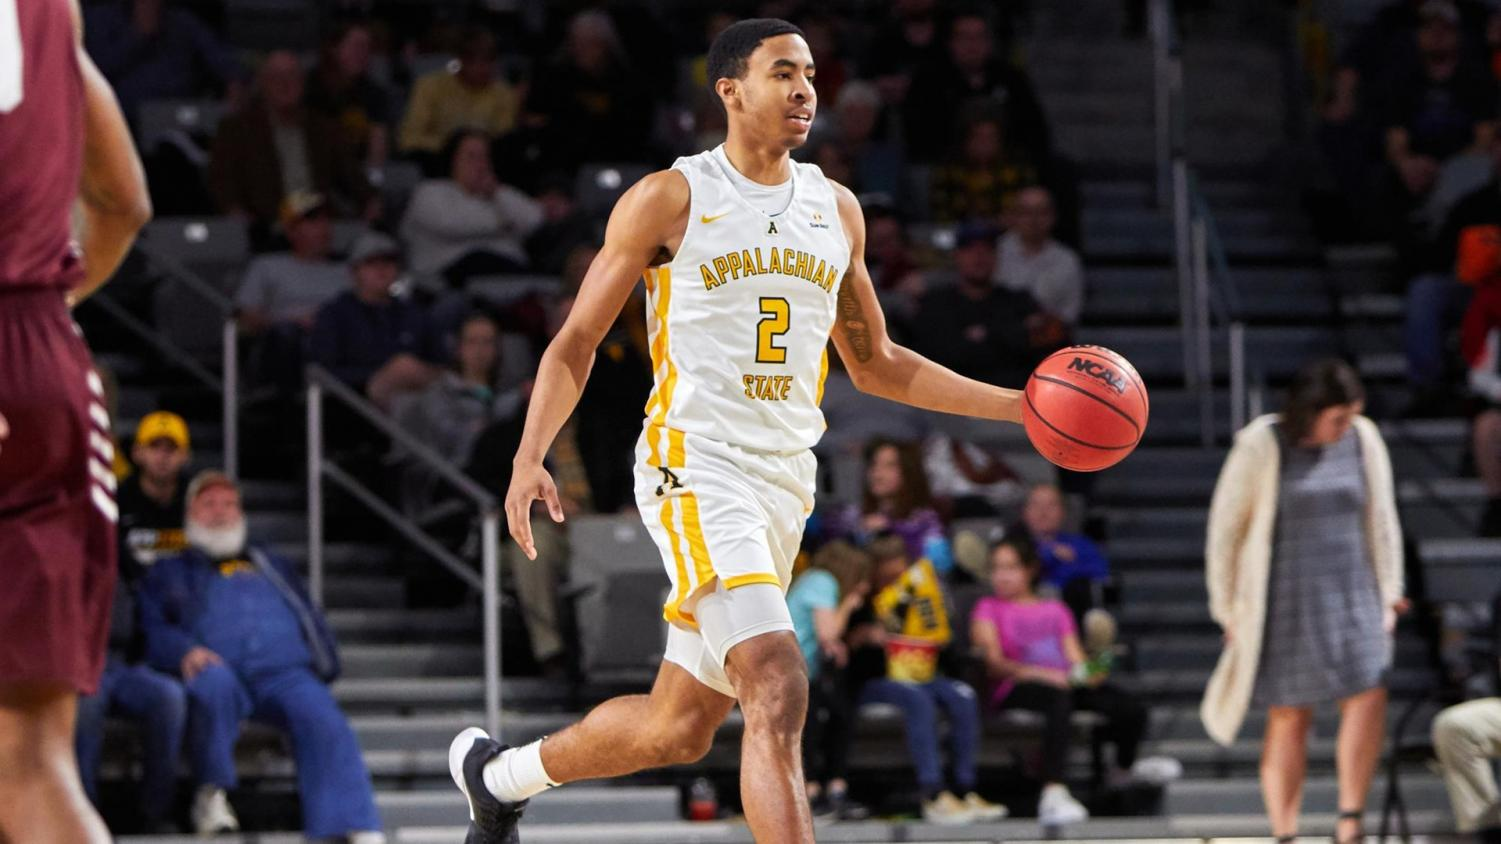 Freshman wing Kendall Lewis scored a career-high 24 points and grabbed seven rebounds in App State's loss at Georgia State on Feb. 13.